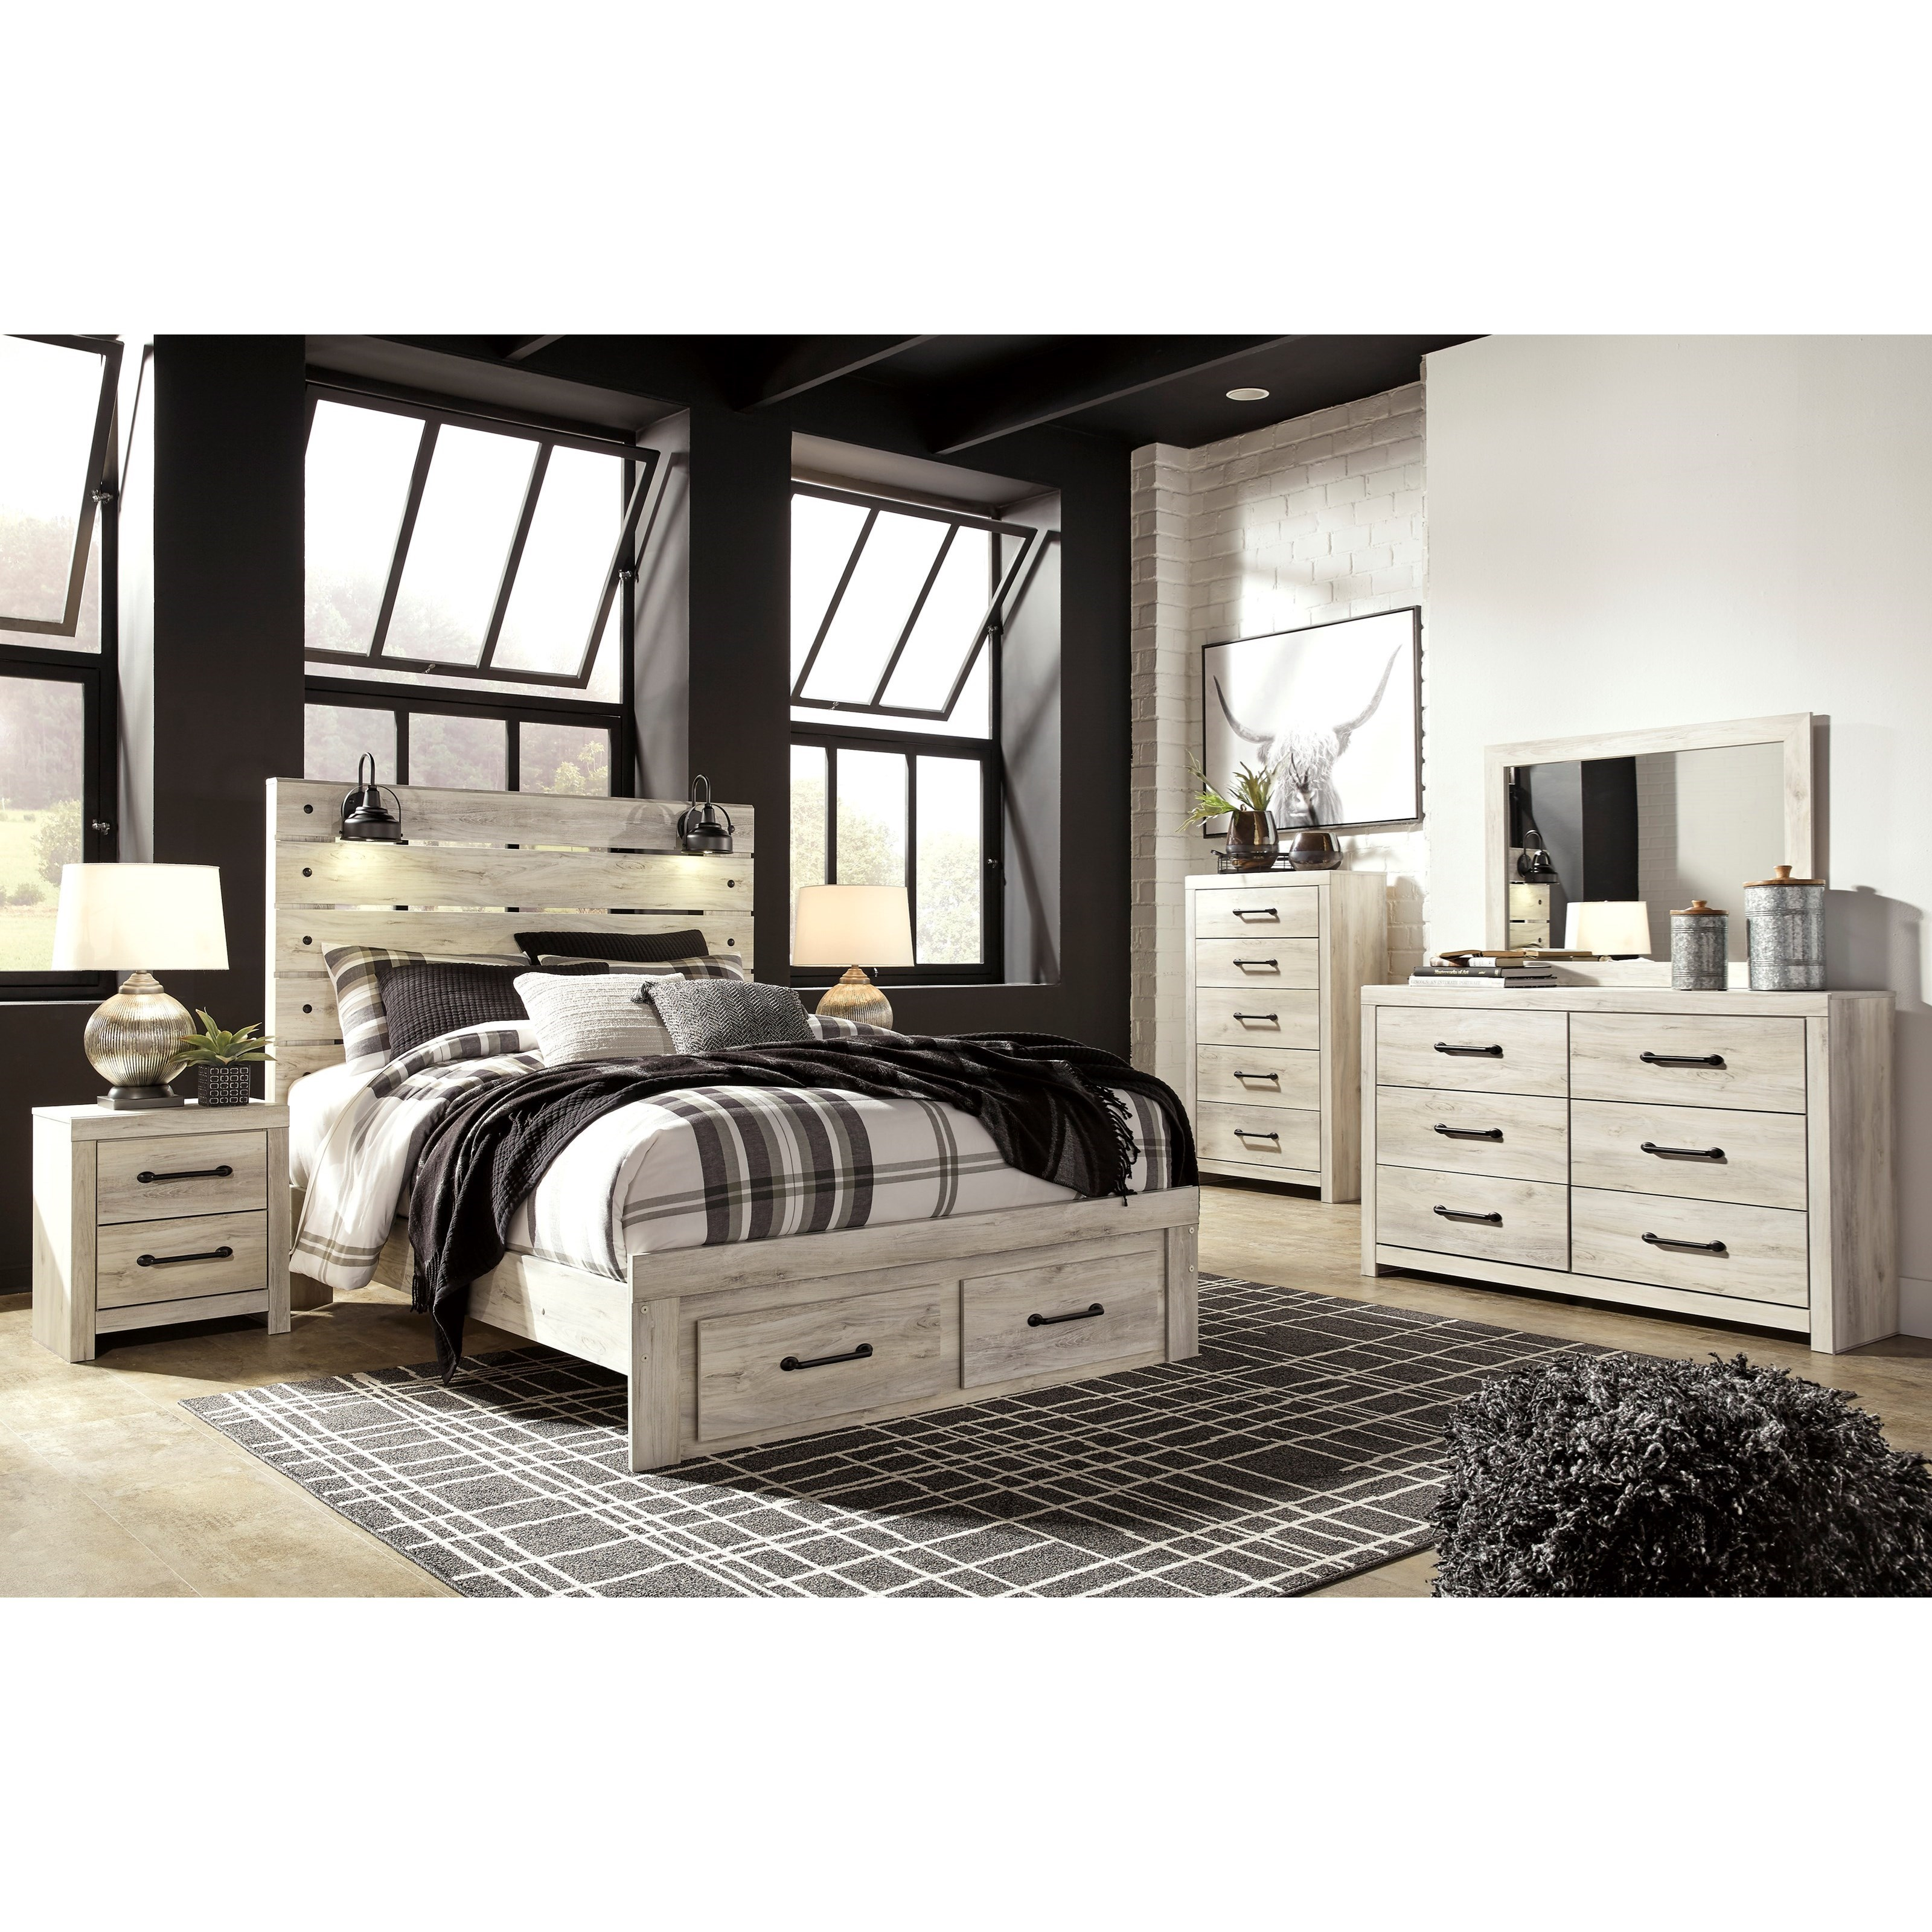 Cambeck Queen Bedroom Group by Ashley (Signature Design) at Johnny Janosik